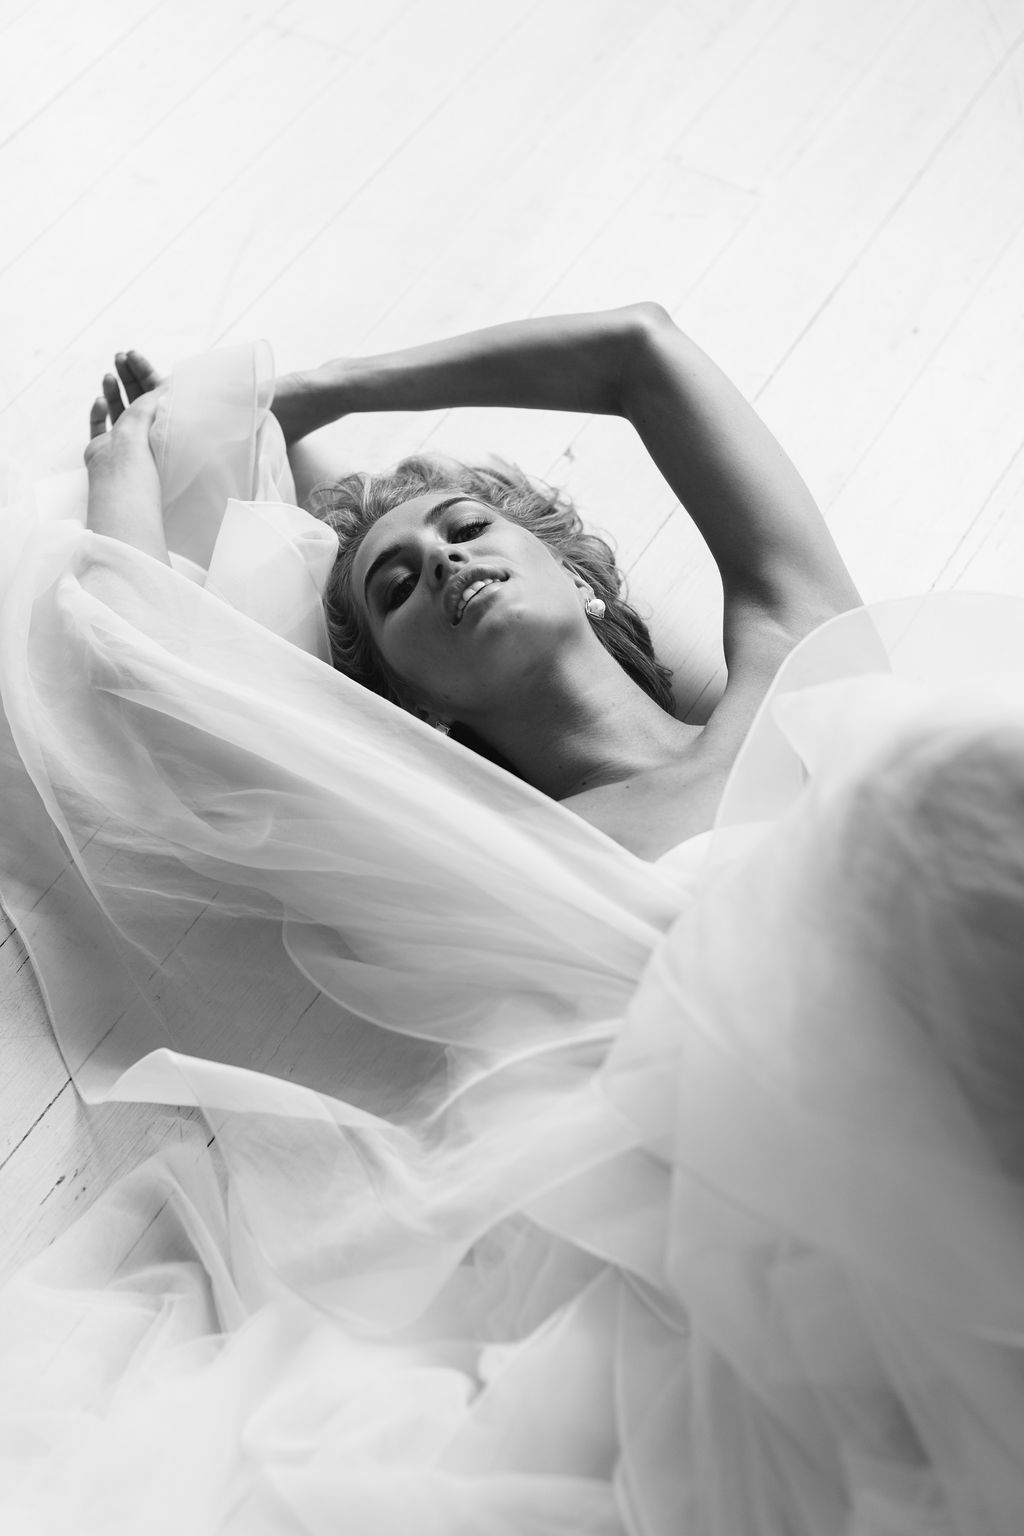 Black and white only fashion photography of bride for Amelie George Jewellery Campaign